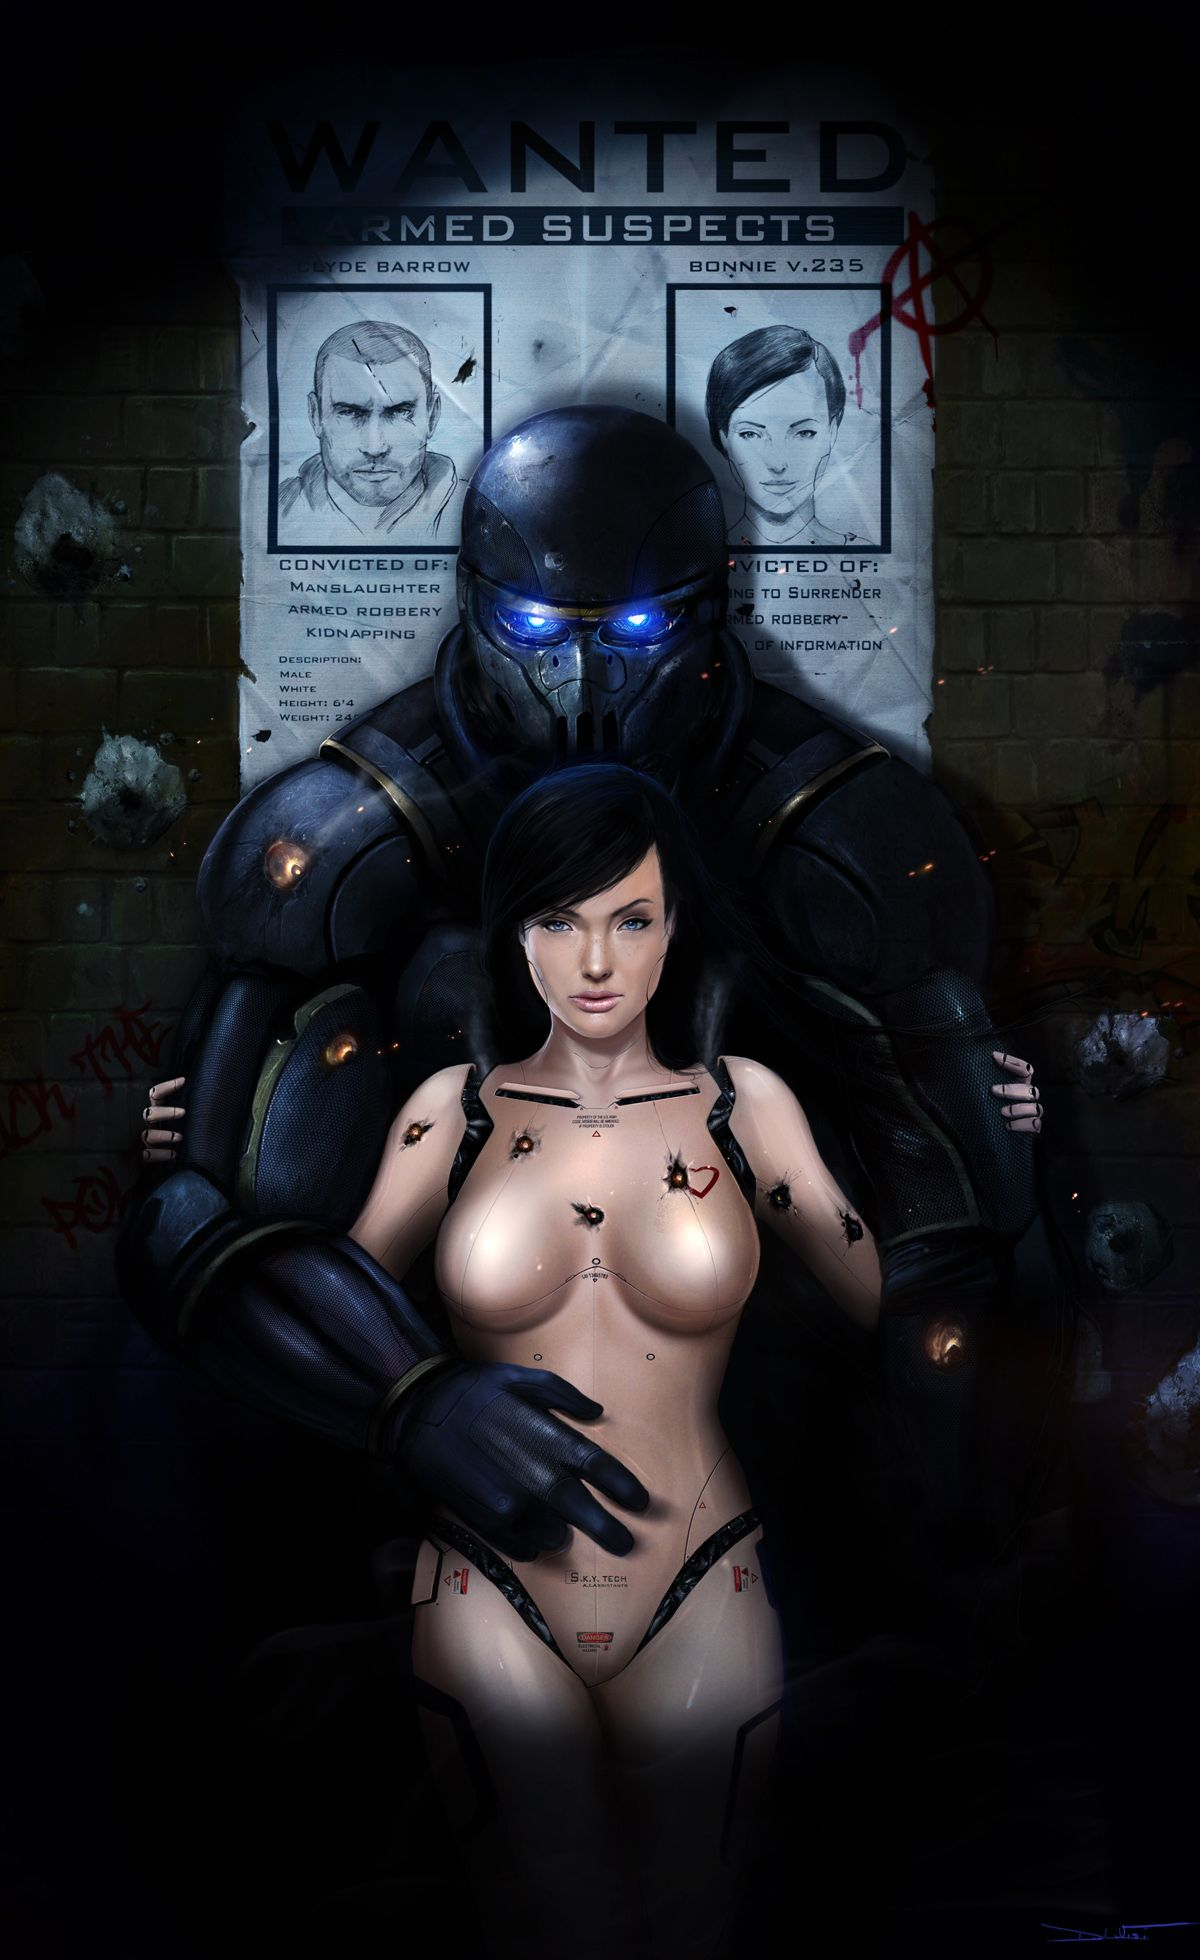 nsfw – wanted robots